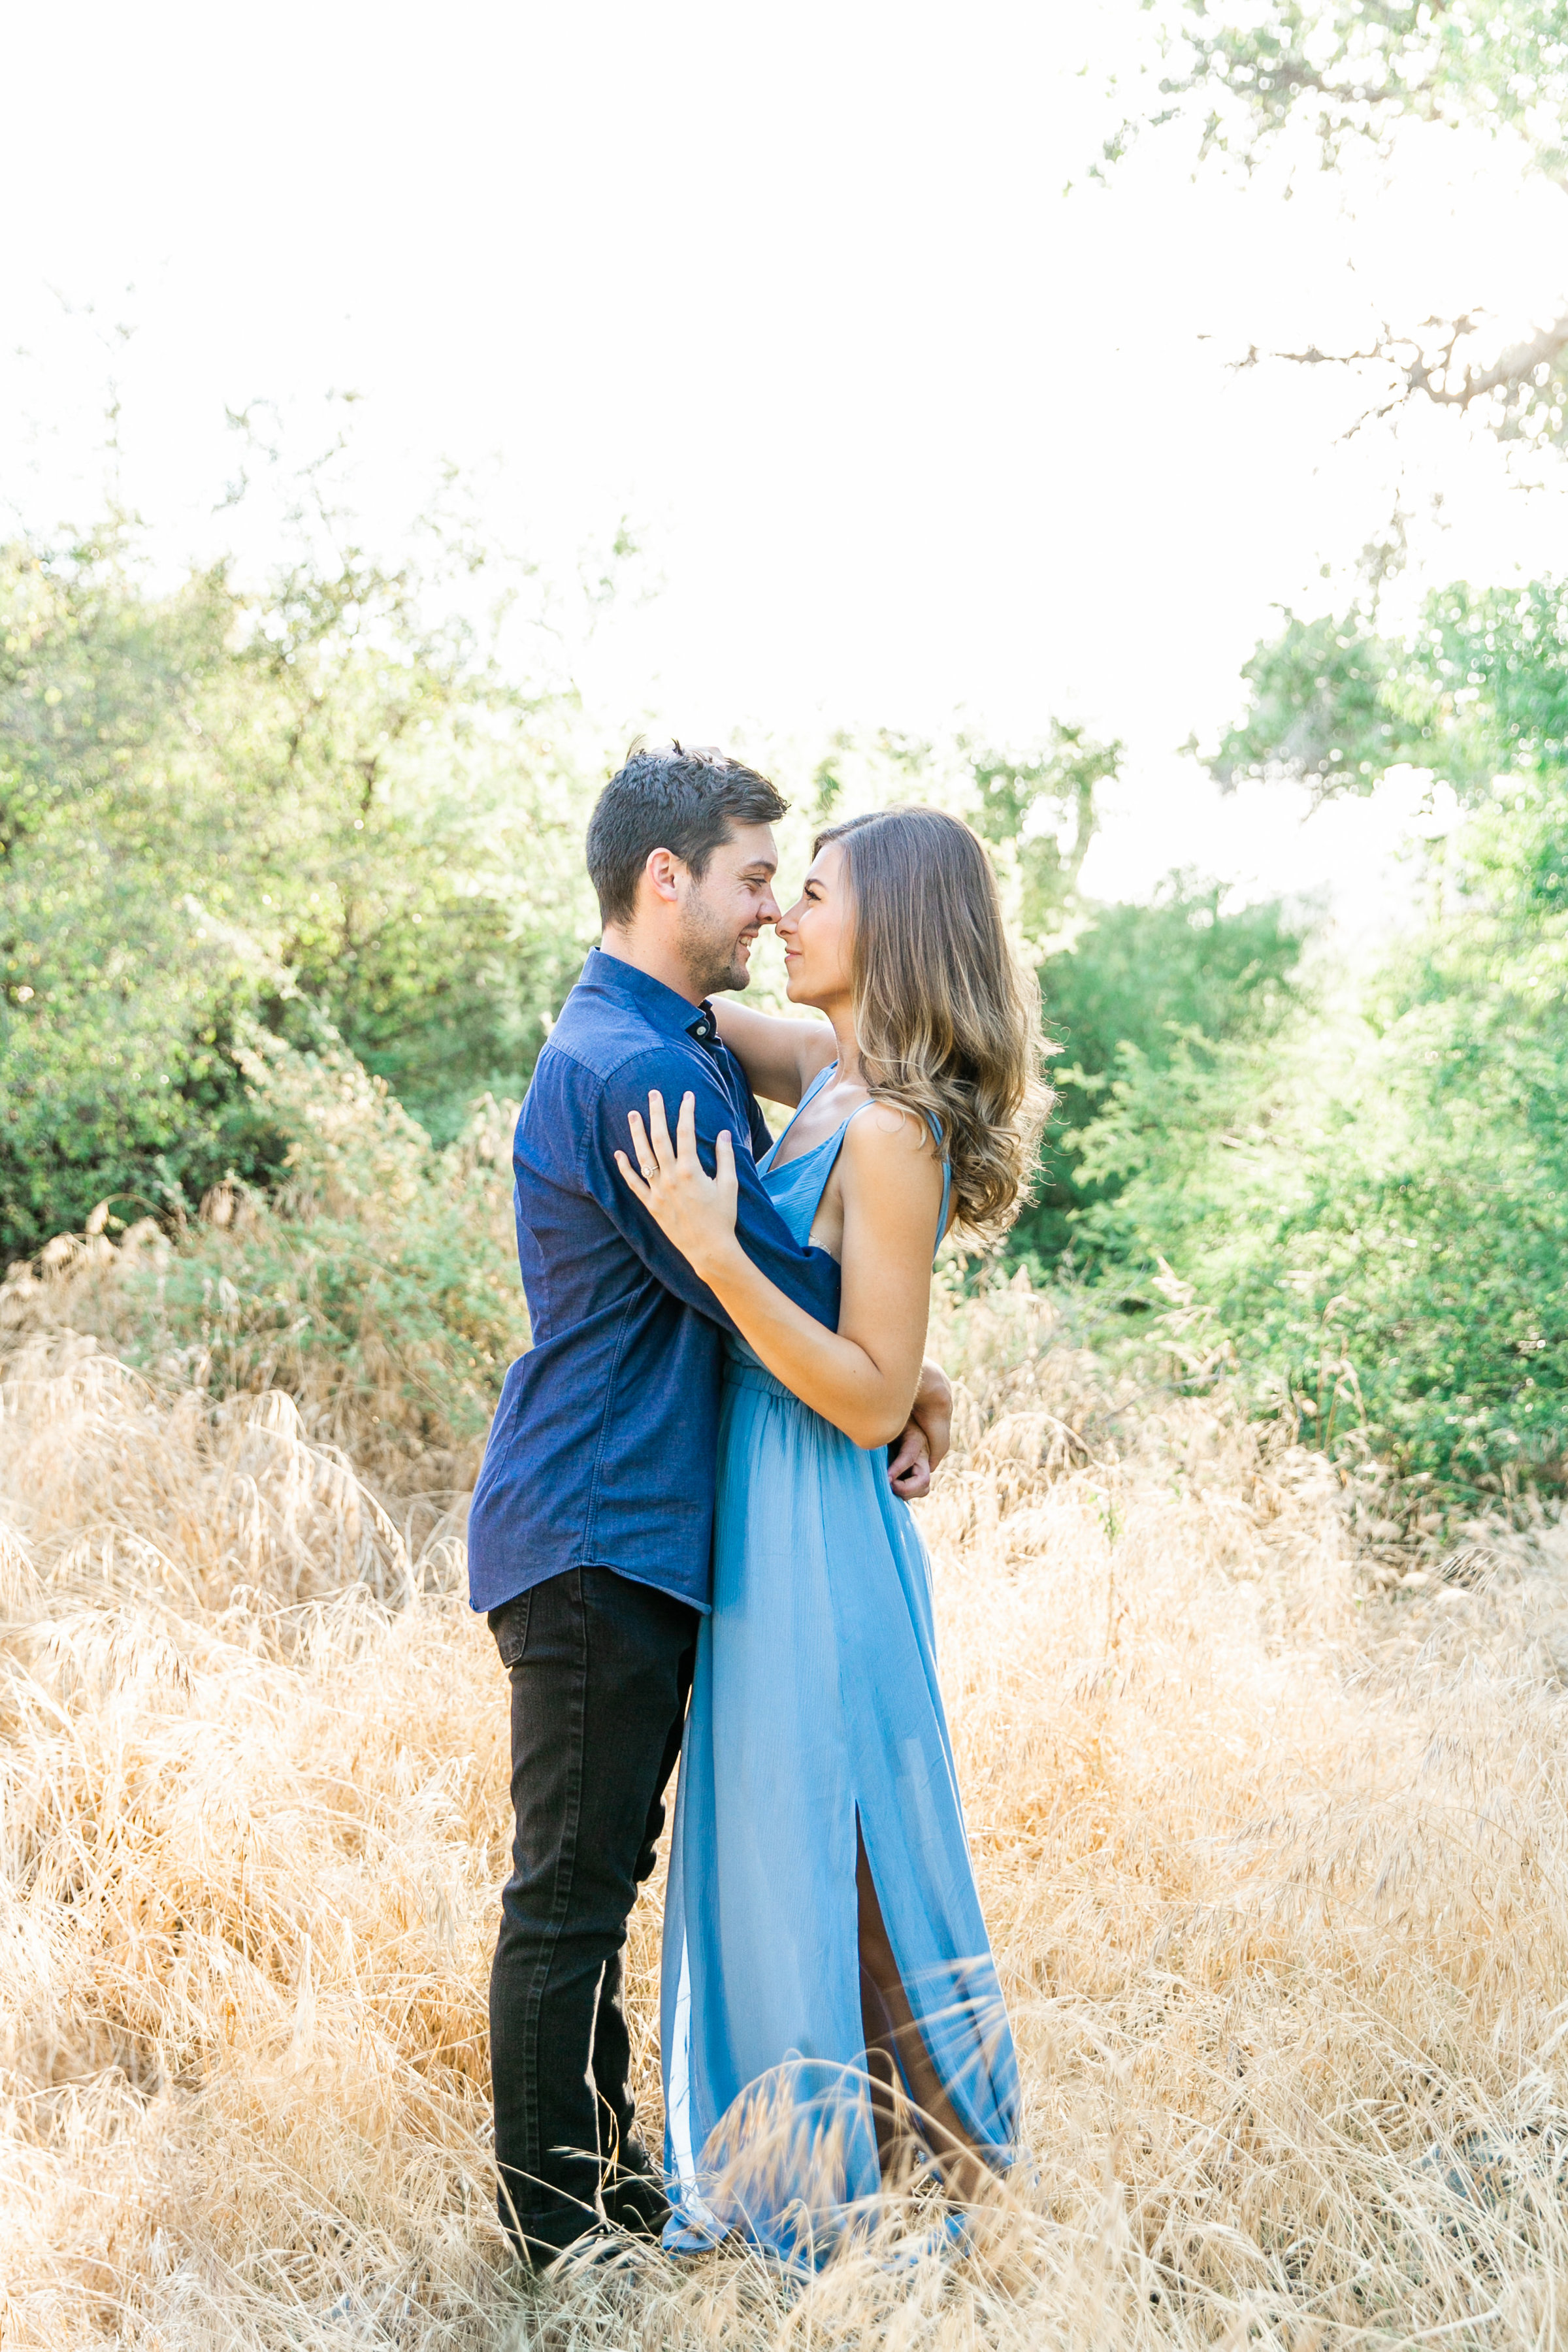 Karlie Colleen Photography - Arizona Desert Engagement - Brynne & Josh -44